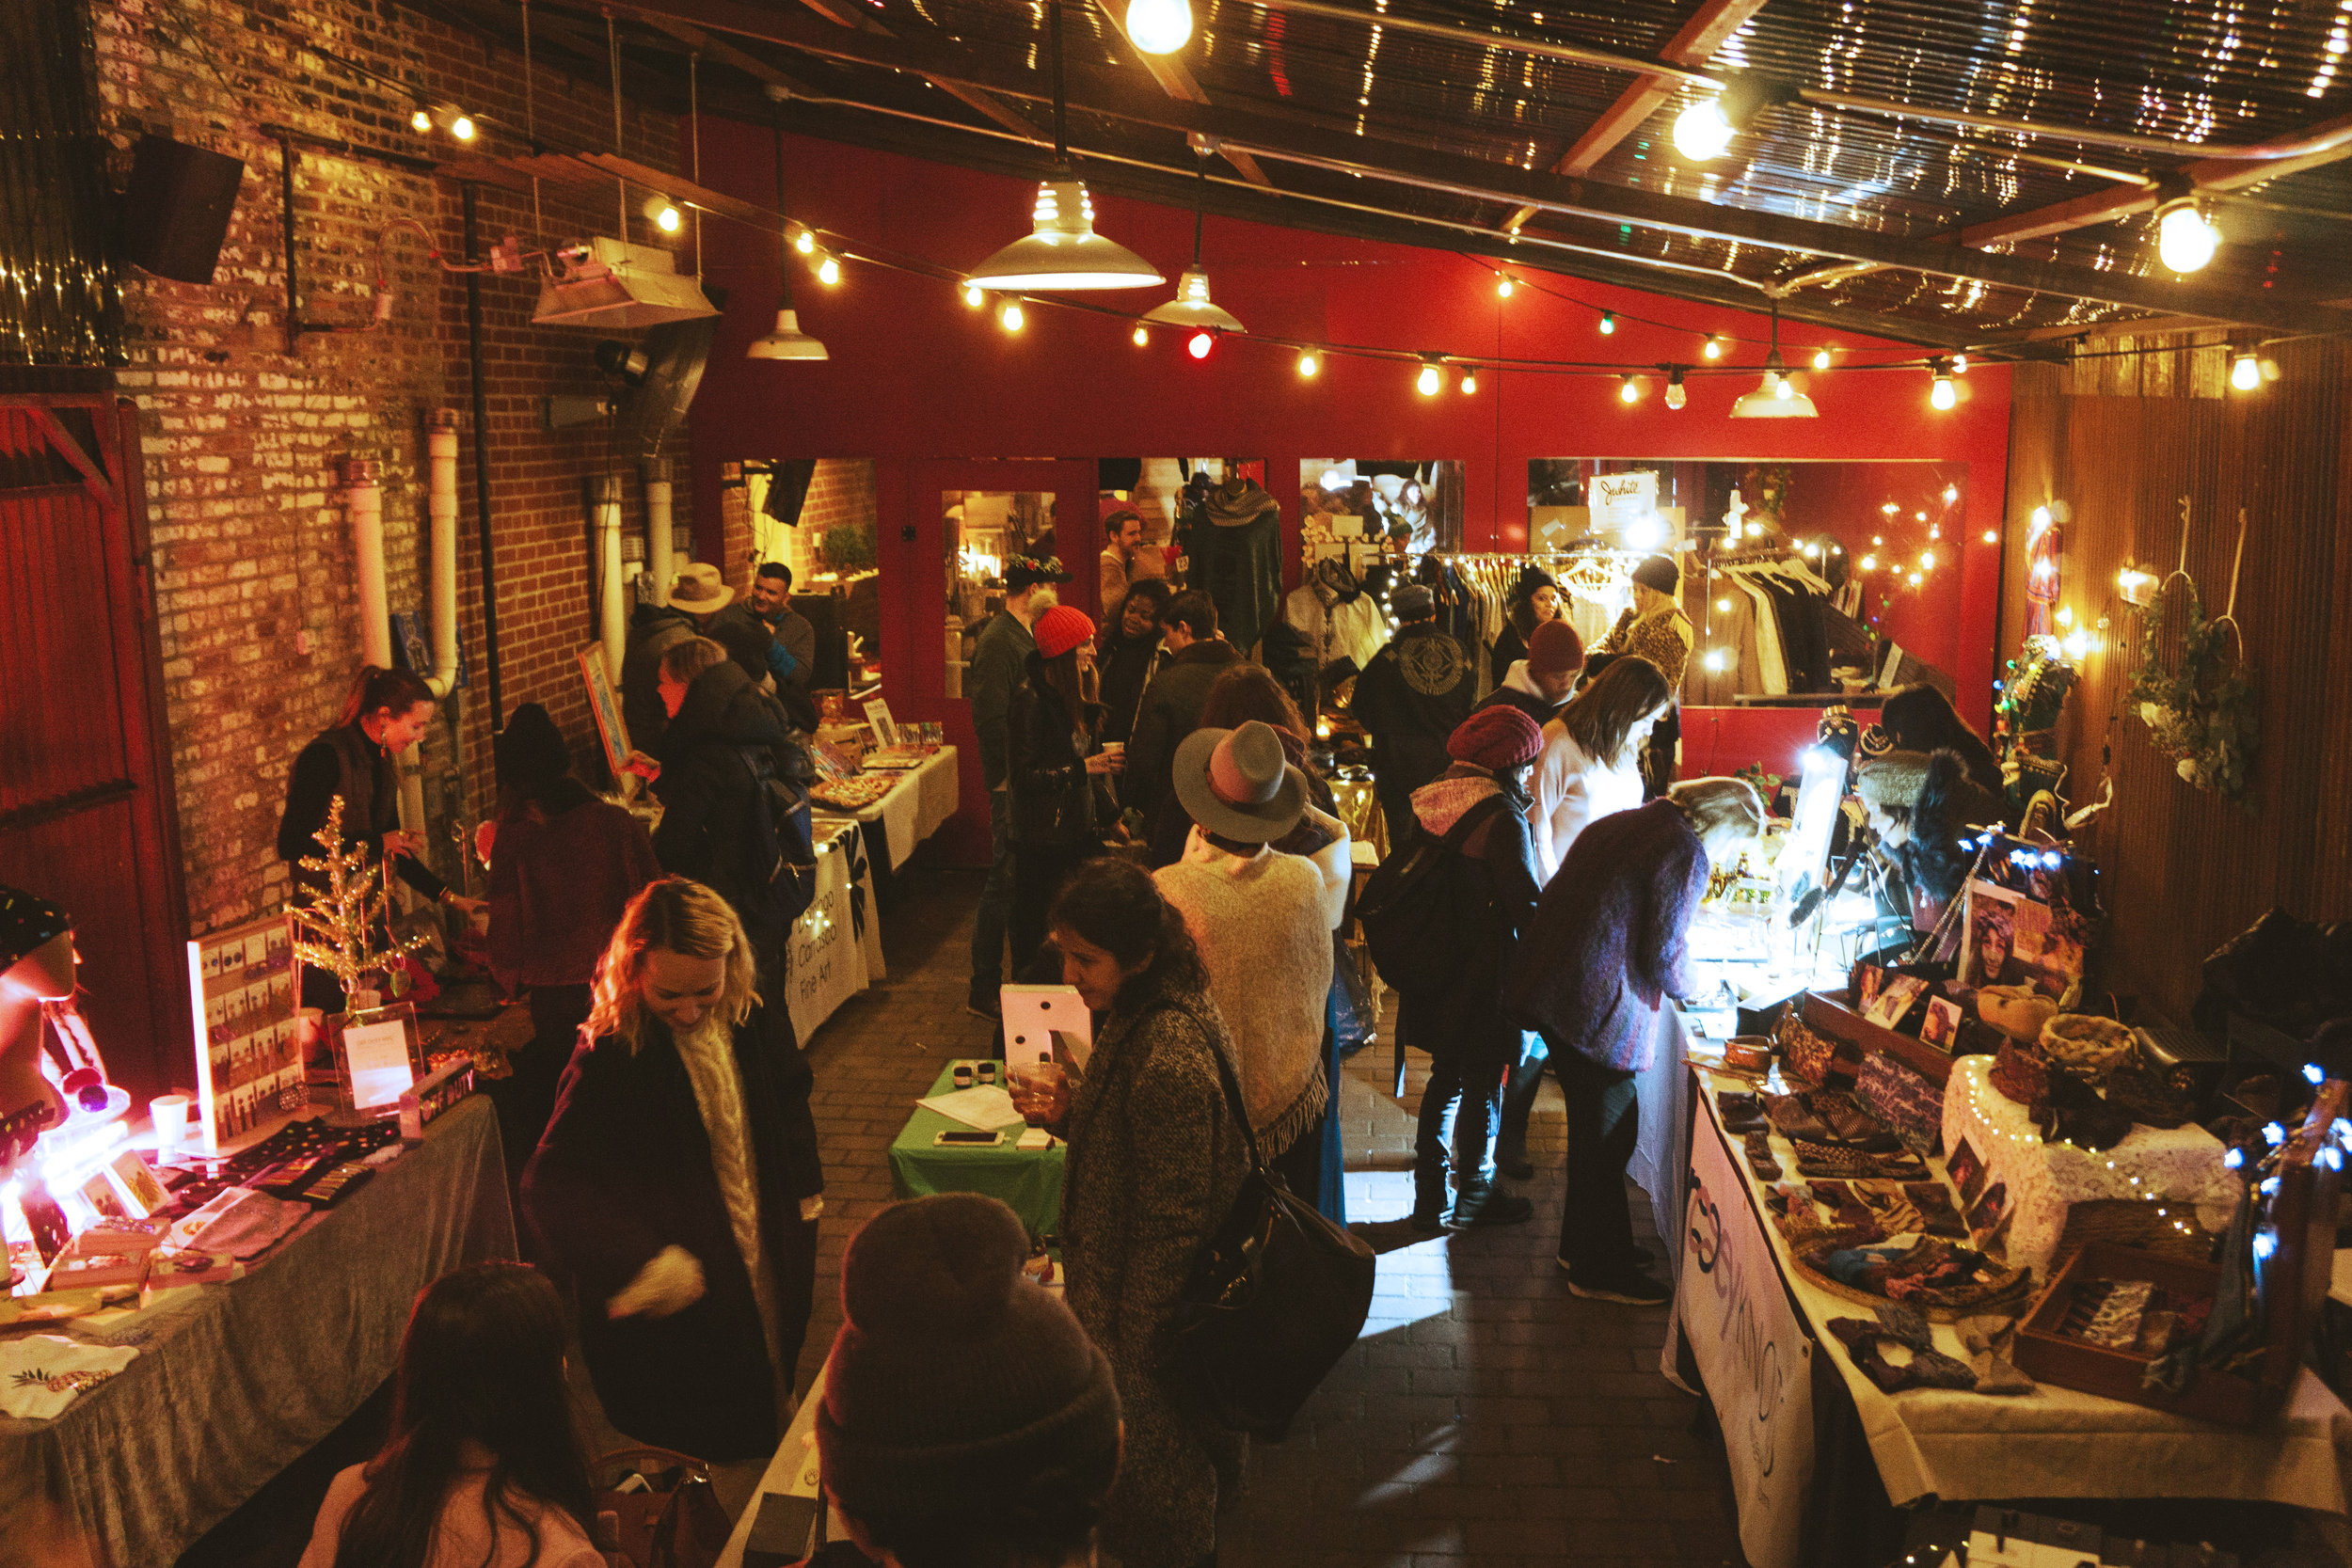 Photo by Nate Sparrow taken in 2016 during our fall market.